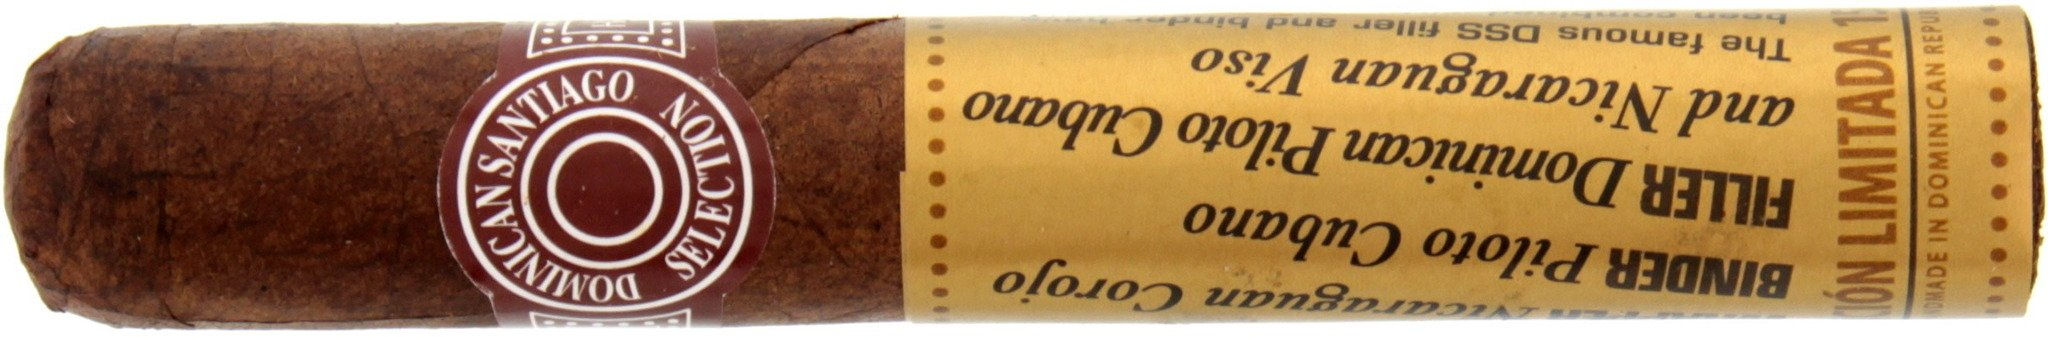 Dominican Santiago Selection (DSS) Limitada 1575 Robusto